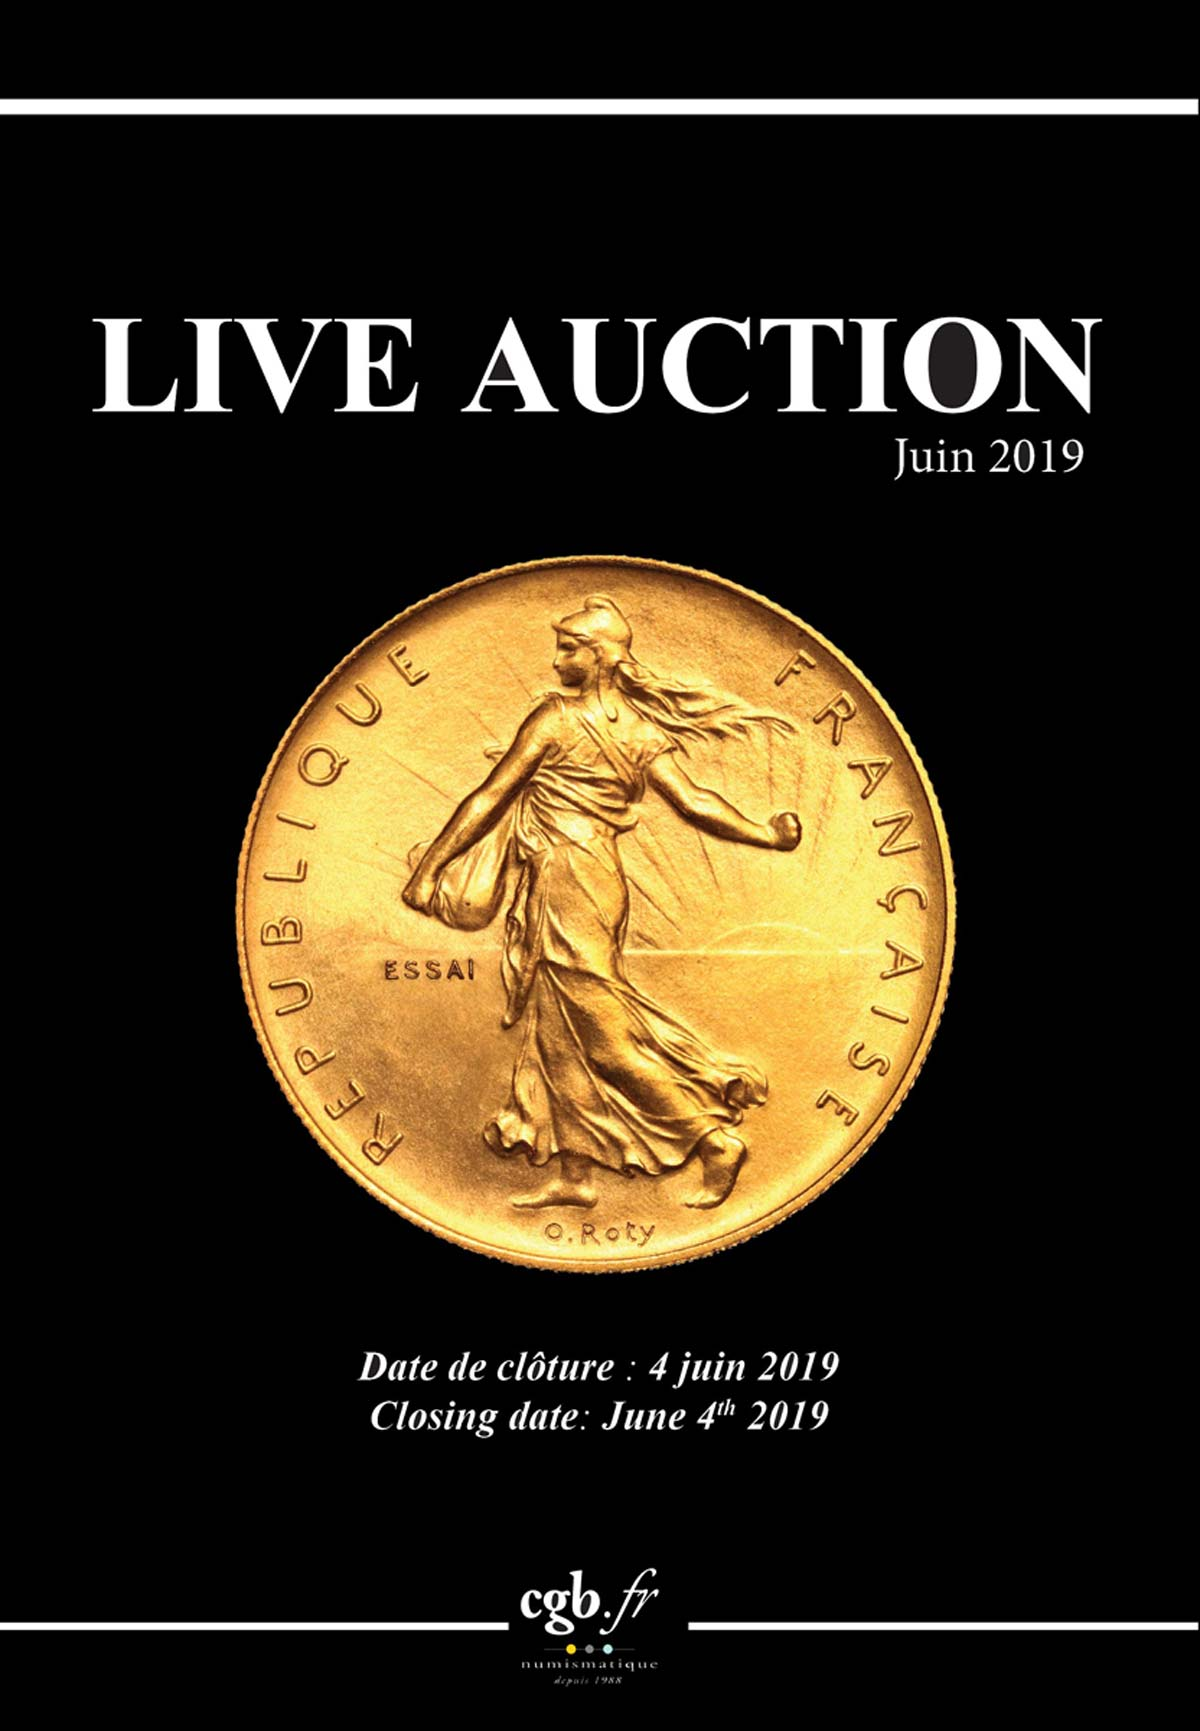 Live Auction - Juin 2019 CLAIRAND Arnaud, COMPAROT Laurent, CORNU Joël, DESSERTINE Matthieu, PARISOT Nicolas, SCHMITT Laurent, VOITEL Laurent